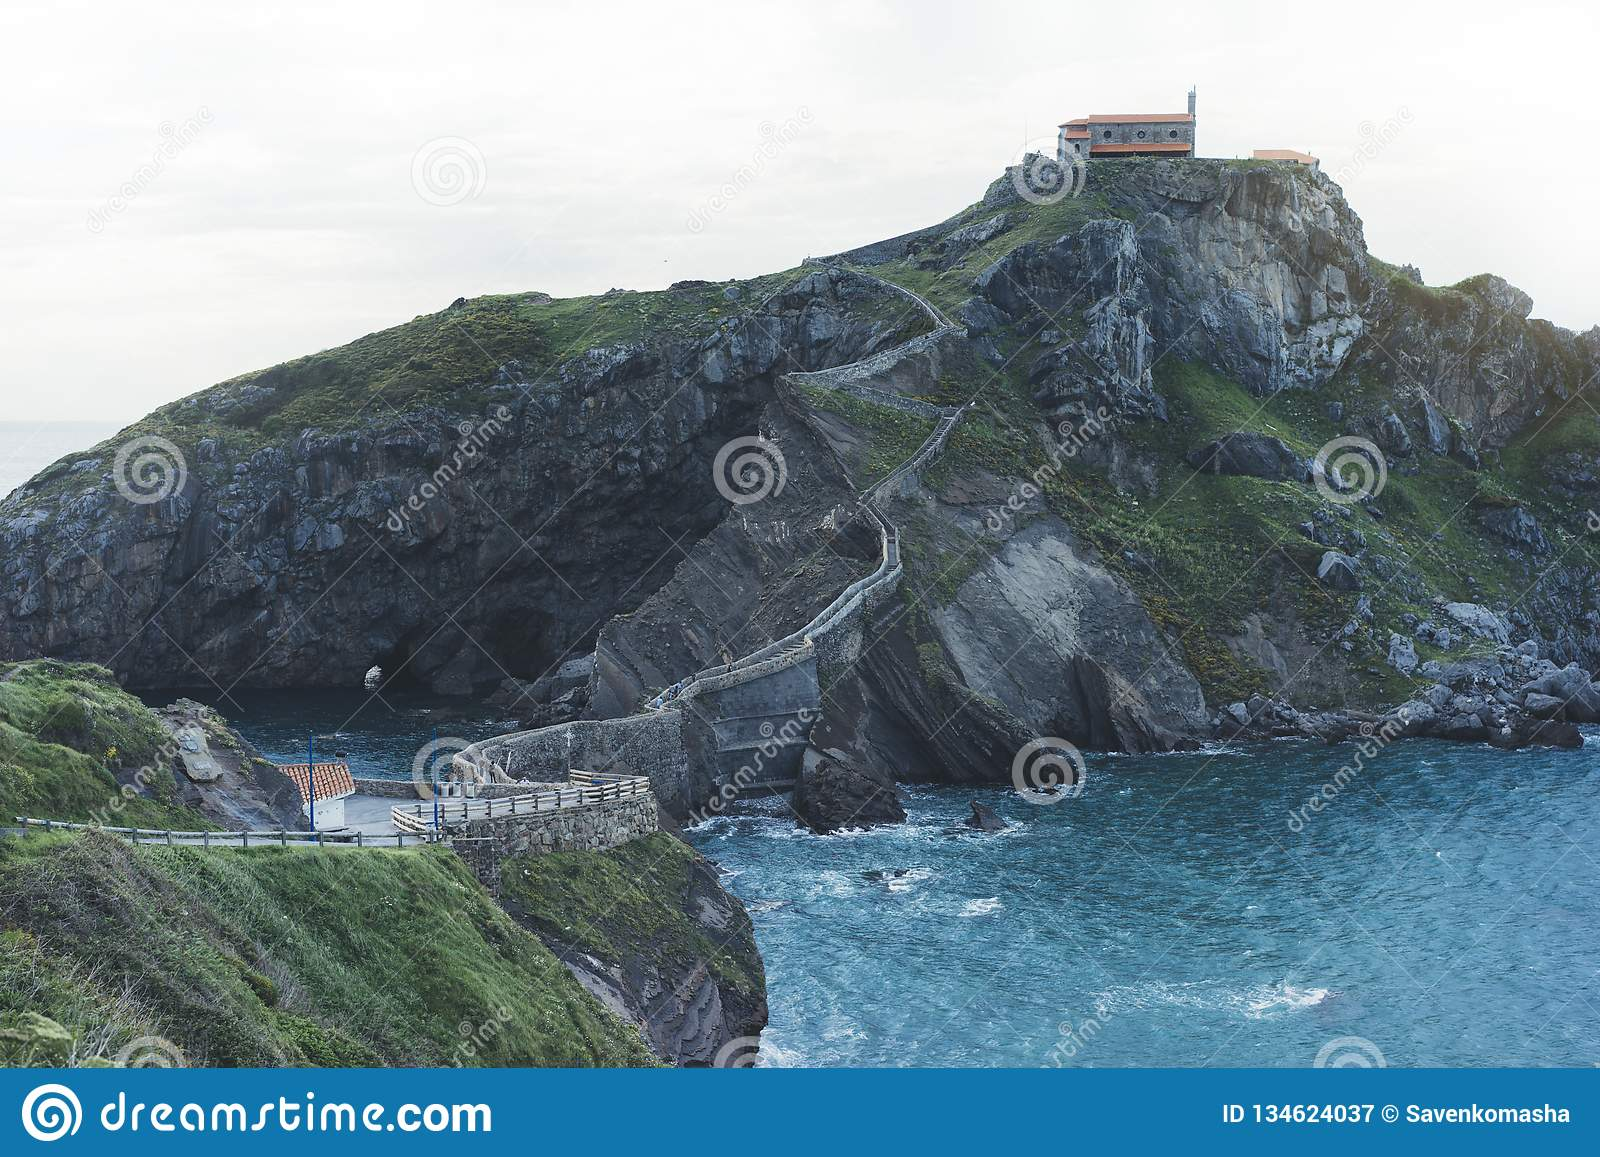 Green valley landscape on background dramatic. View sunlight blue ocean in trip holiday in basque island Gaztelugatxe. Panorama